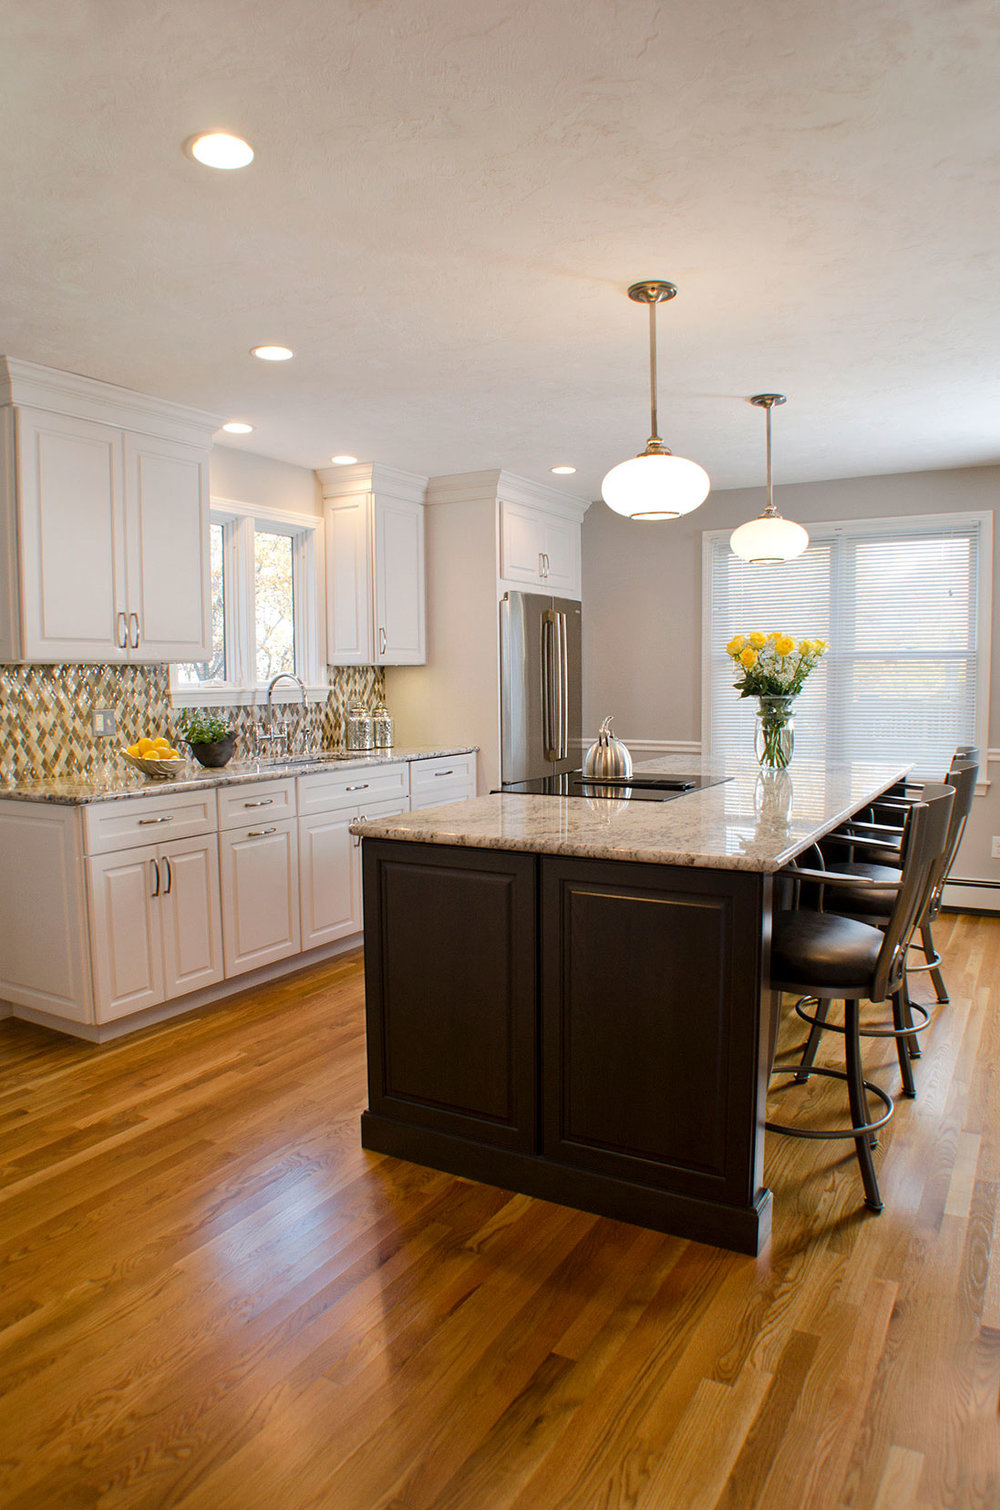 Quincy, MA kitchen interior renovation by Susan Curtis